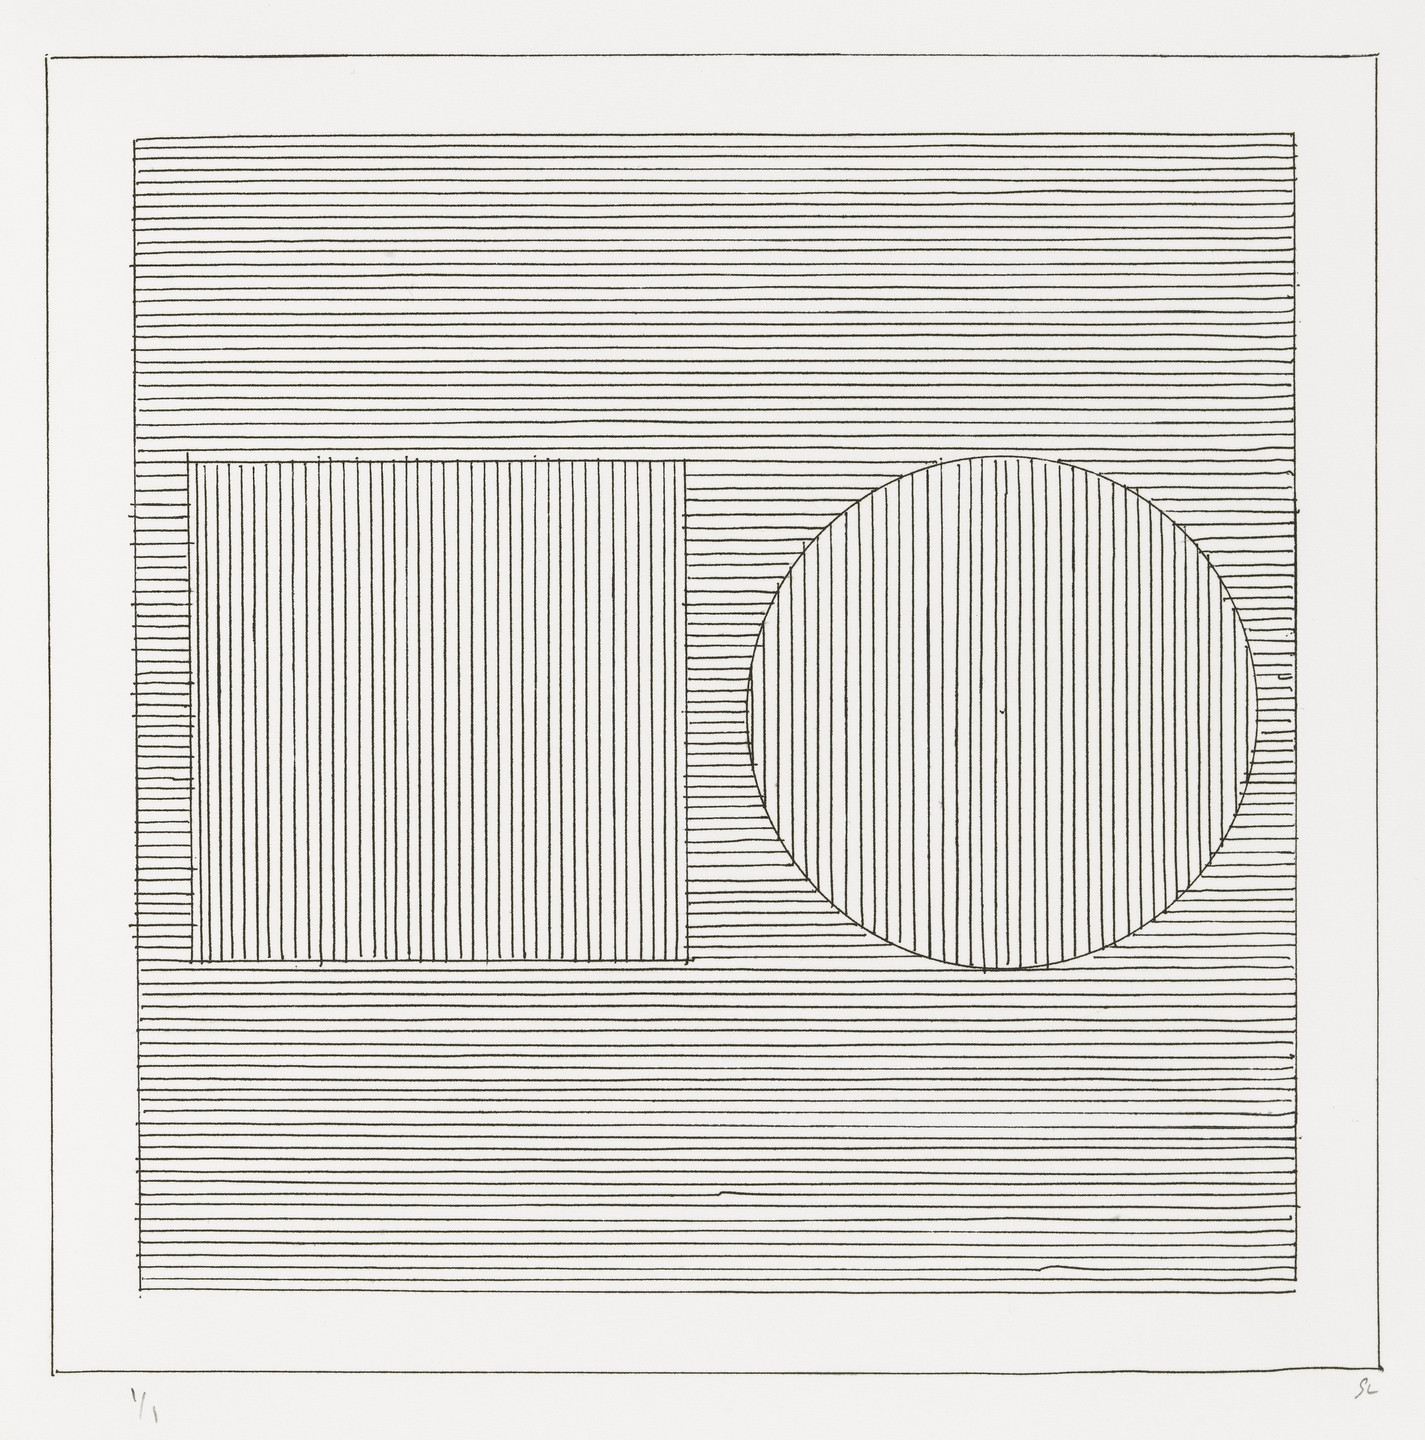 Sol LeWitt. Plate (folio 8) from Six Geometric Figures and All Their Combinations, Volume II. 1980